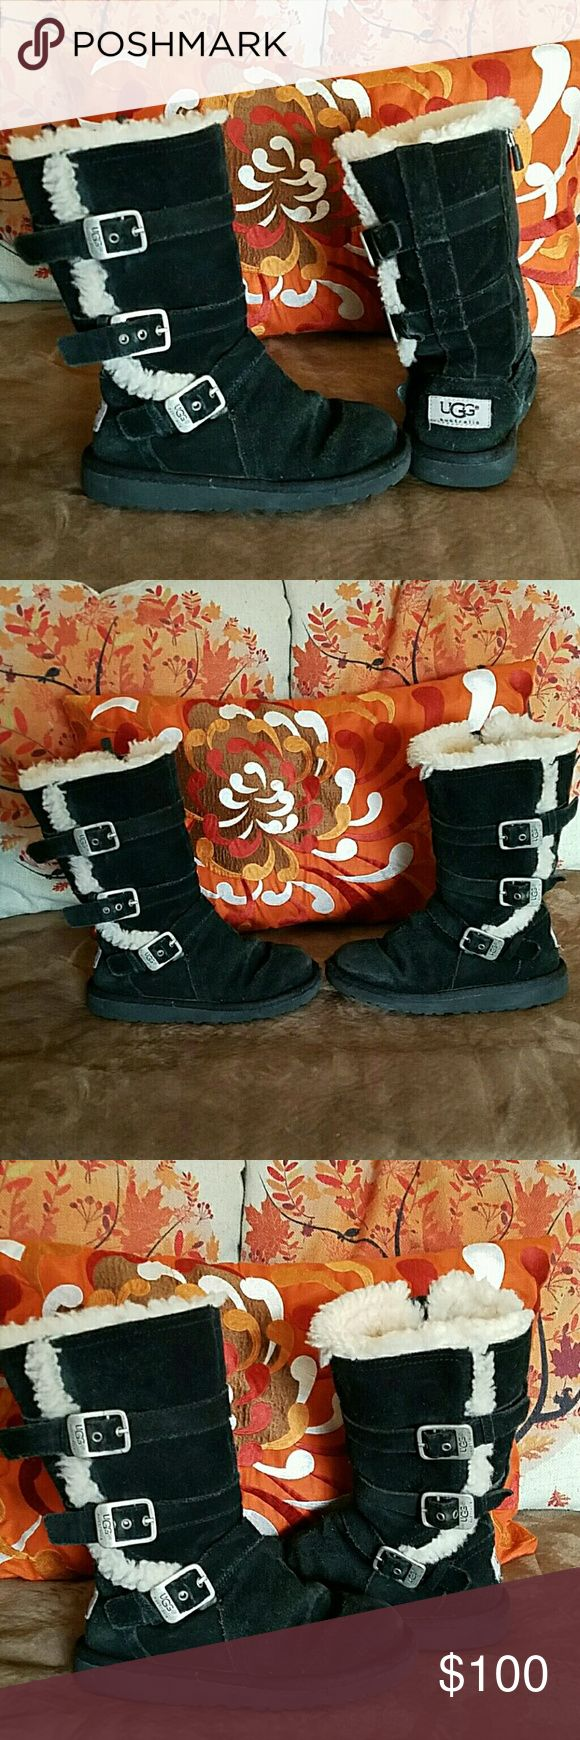 Genuine UGG Winter Boots For Girls Cute UGG boots in good preloved shape. Free of holes  tears or rips. Just normal creasing and fading. Thick lining and clean. Size 12 for little girls. UGG Shoes